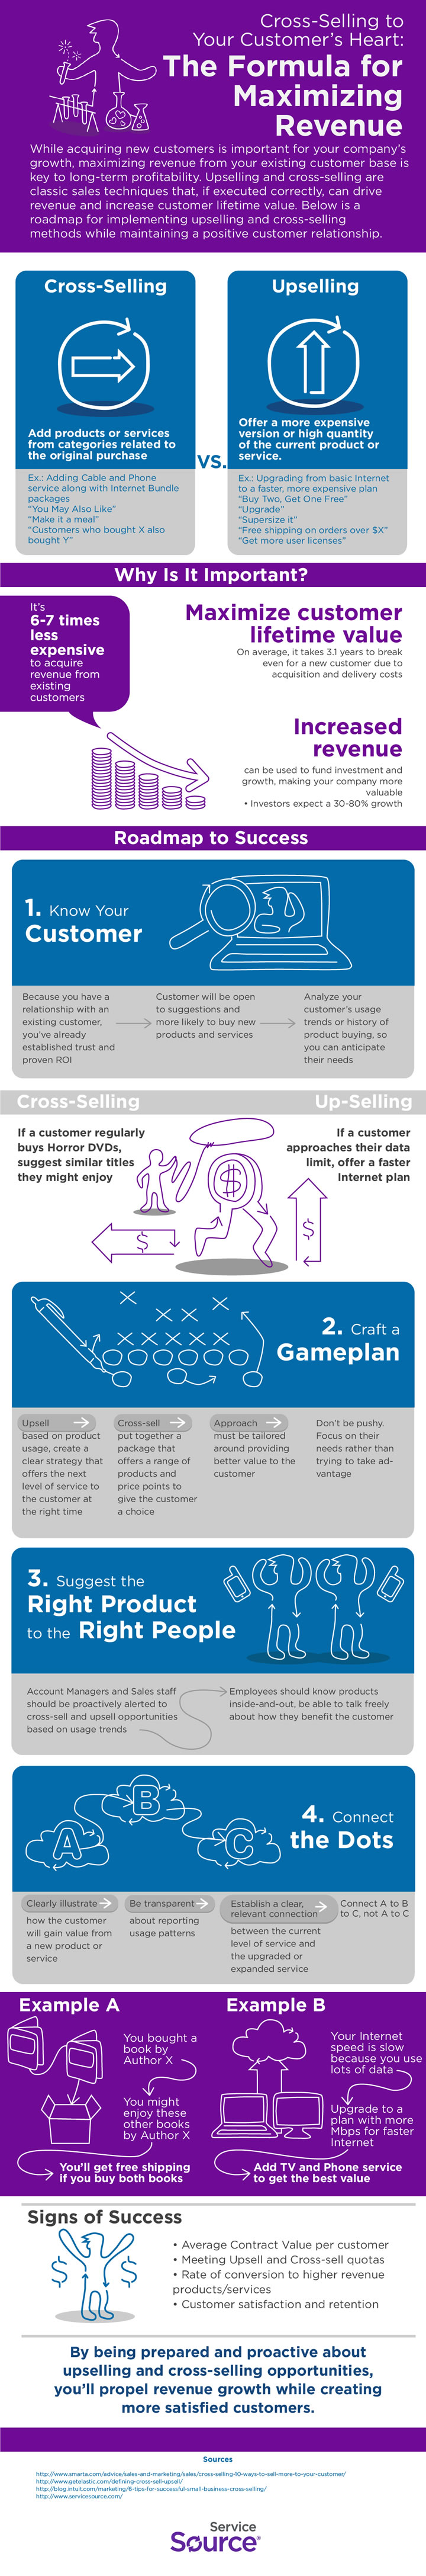 Cross-Selling to Your Customer's Heart Infographic